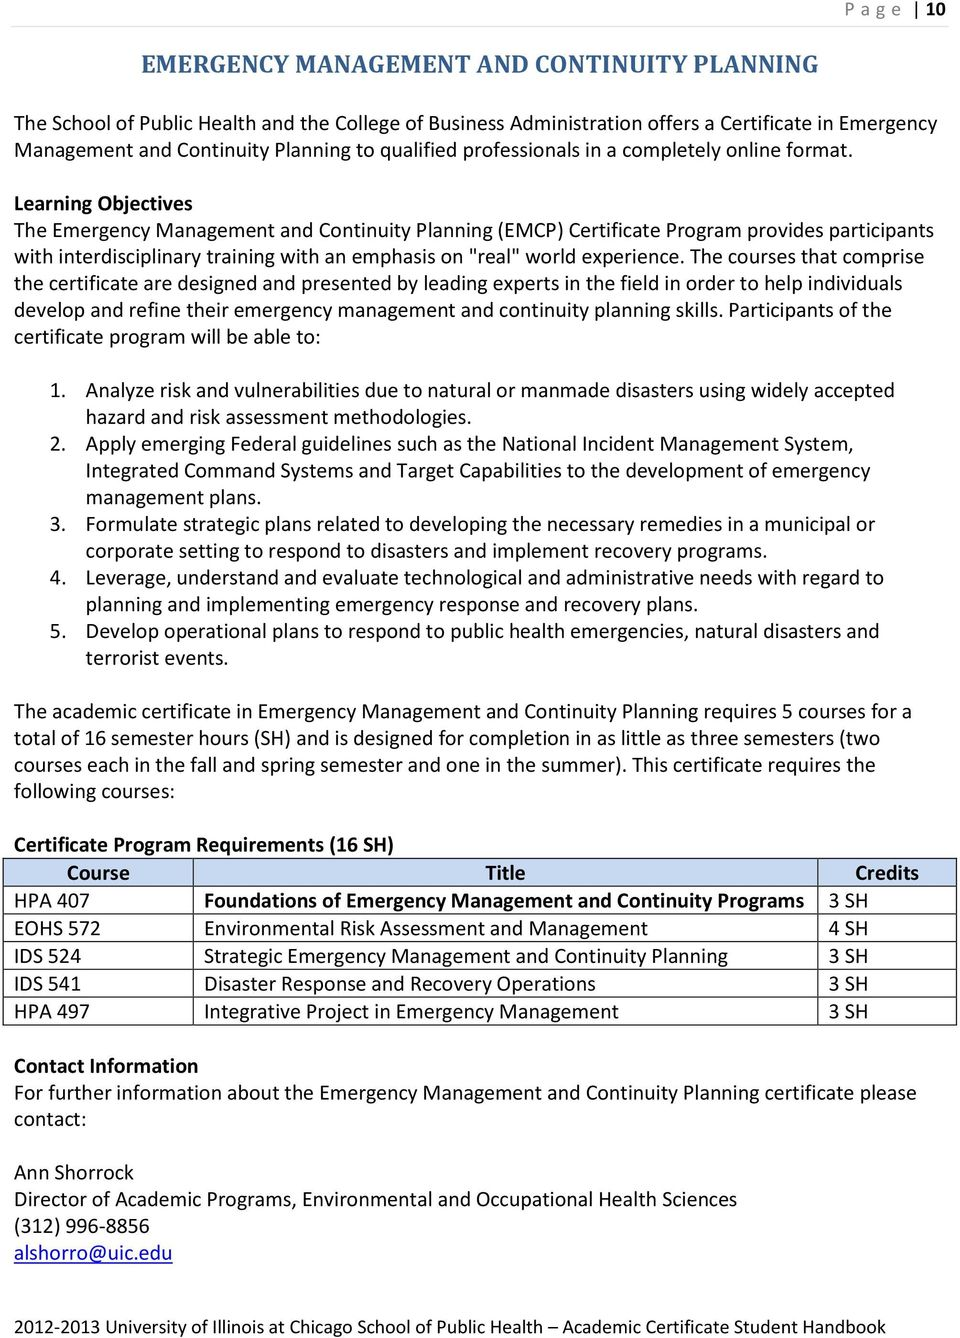 "Learning Objectives The Emergency Management and Continuity Planning (EMCP) Certificate Program provides participants with interdisciplinary training with an emphasis on ""real"" world experience."